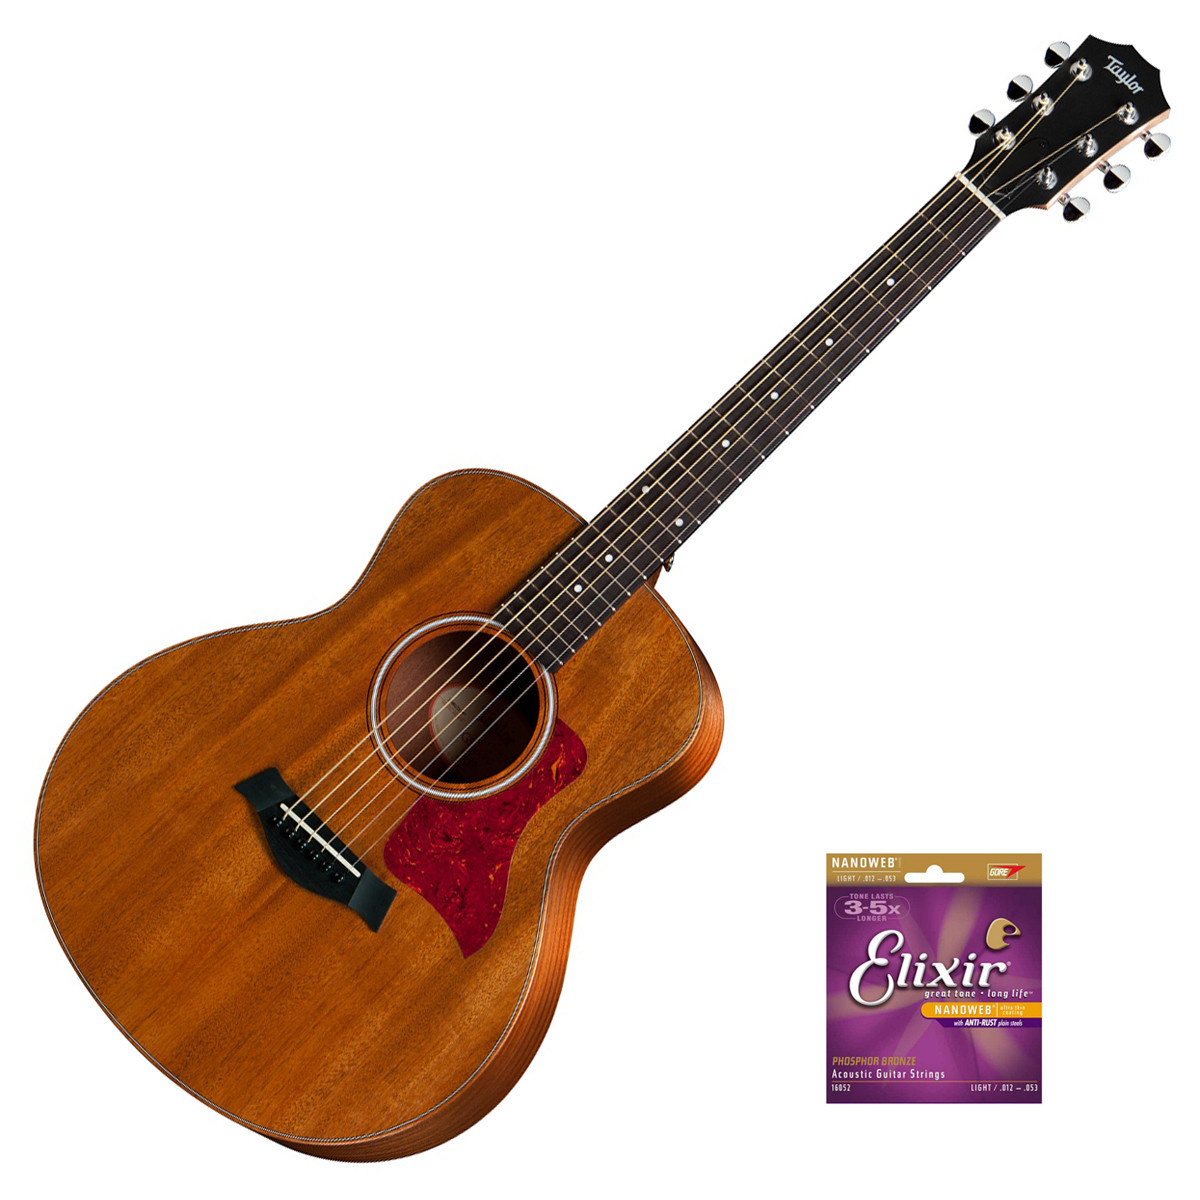 taylor gs mini mahogany acoustic guitar with free elixir strings at. Black Bedroom Furniture Sets. Home Design Ideas